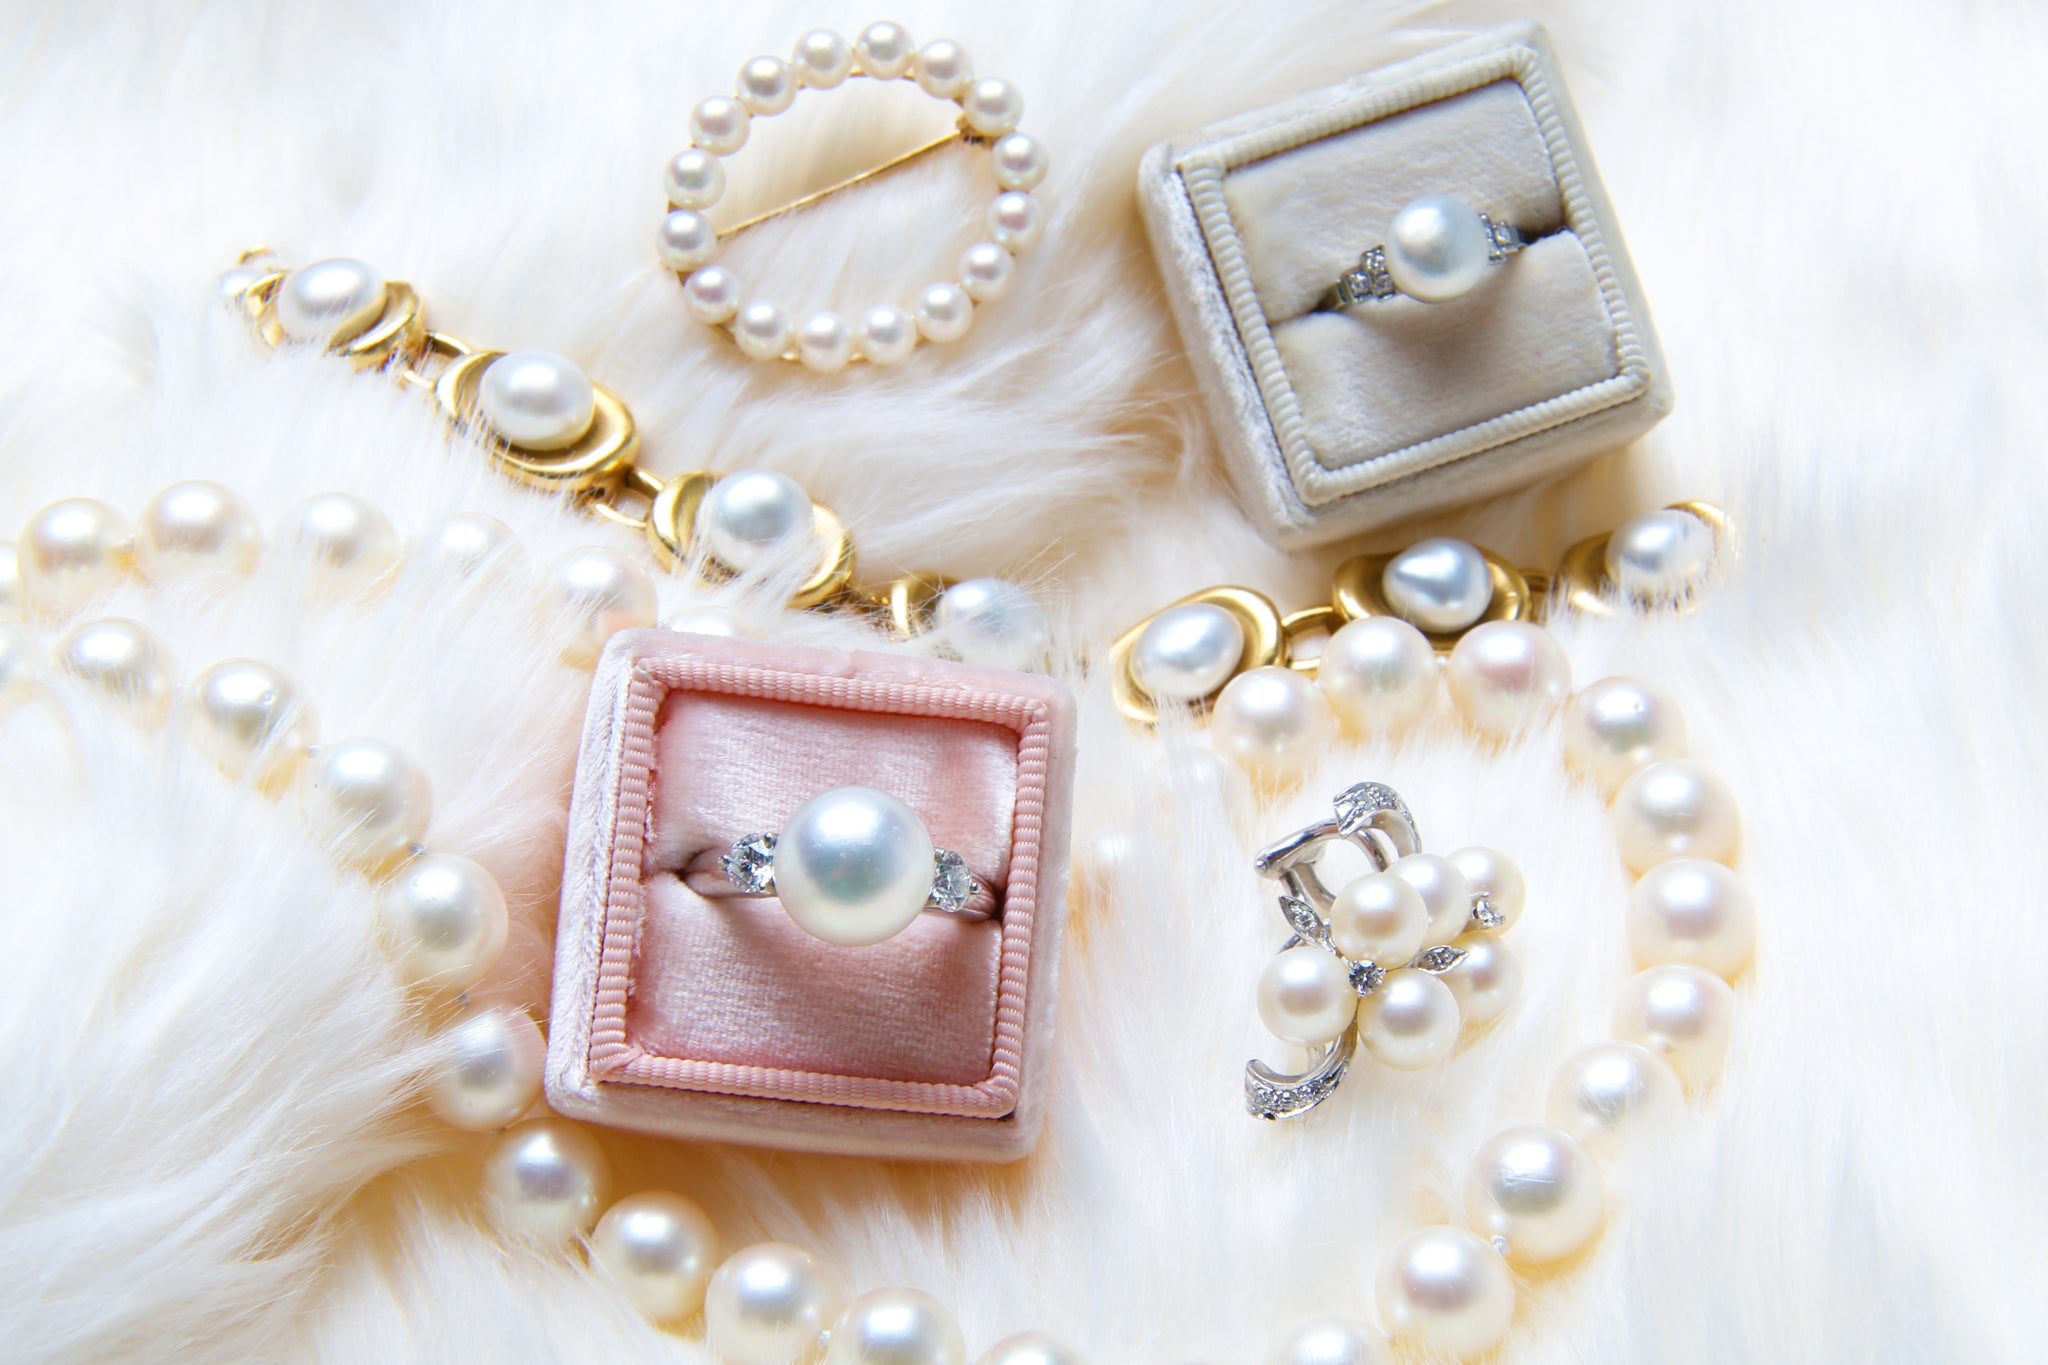 Vintage Pearl Engagement Rings and Pearl Jewelry from Trumpet & Horn